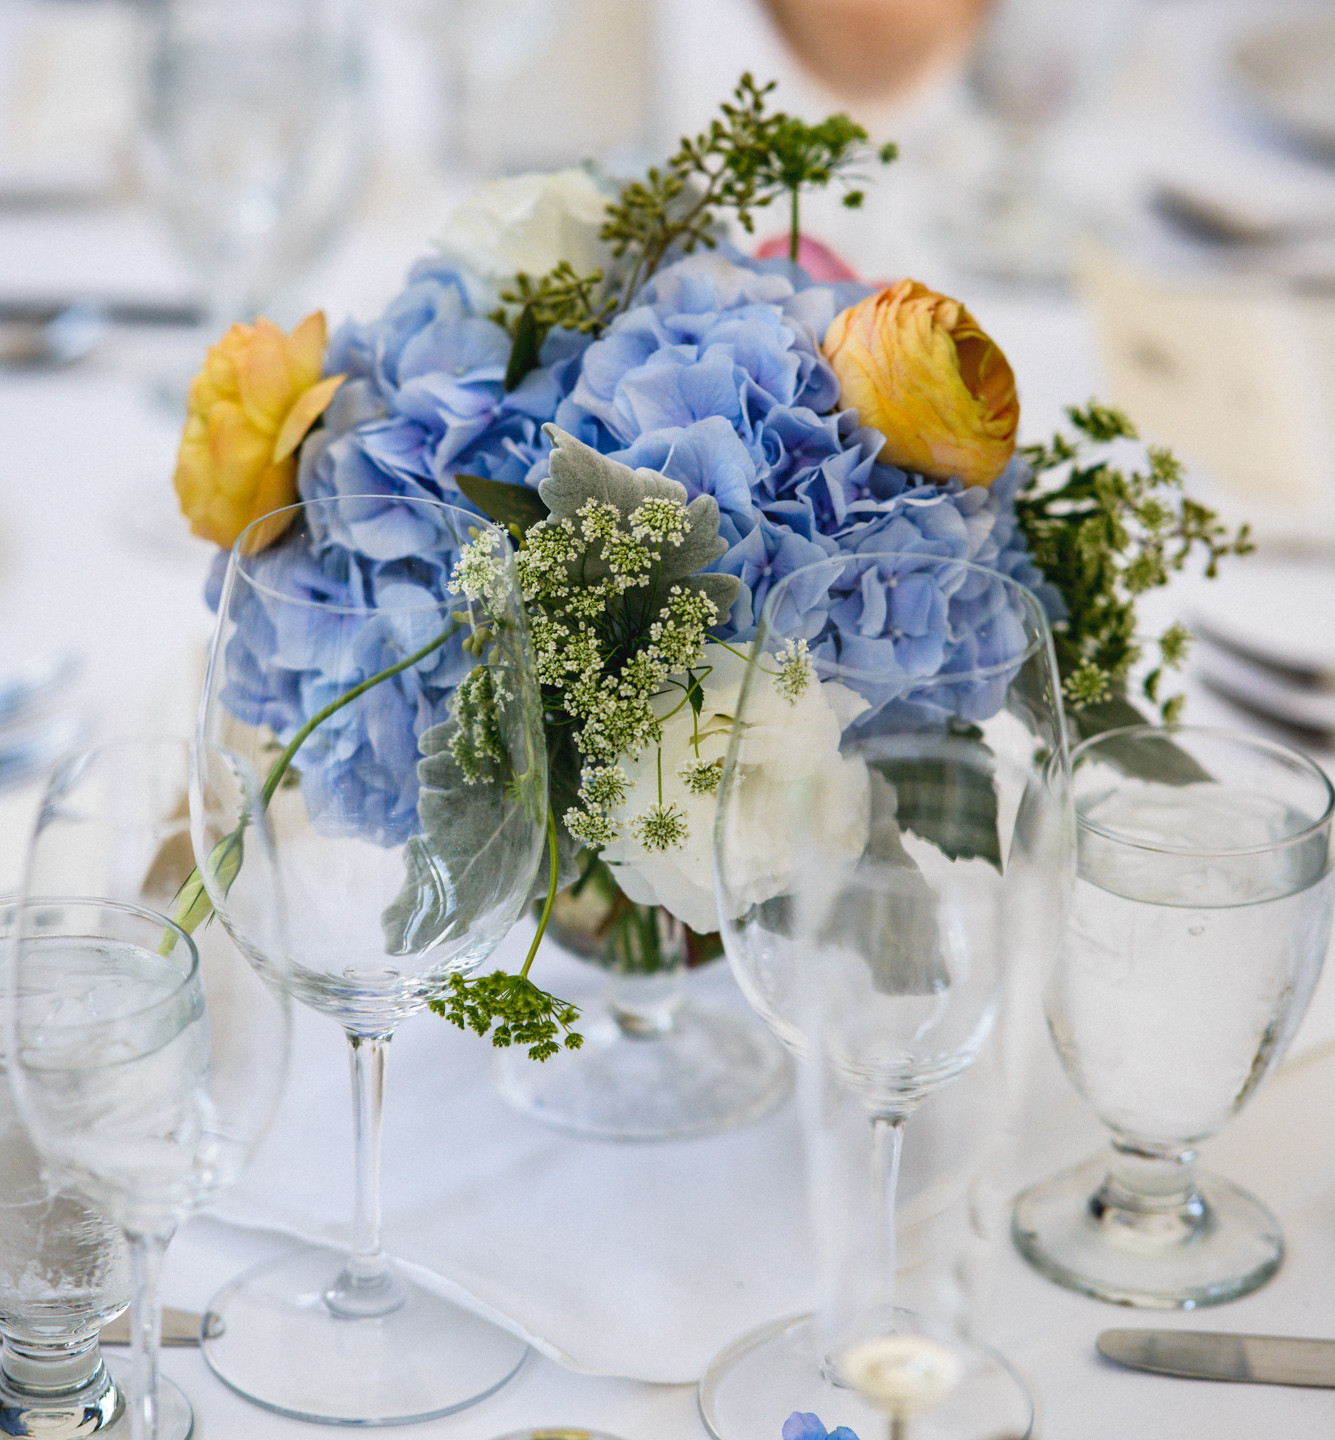 A wedding tablescape  at Atria Restaurant and Brick Cellar Bar in Edgartown photo by David Welch Photography